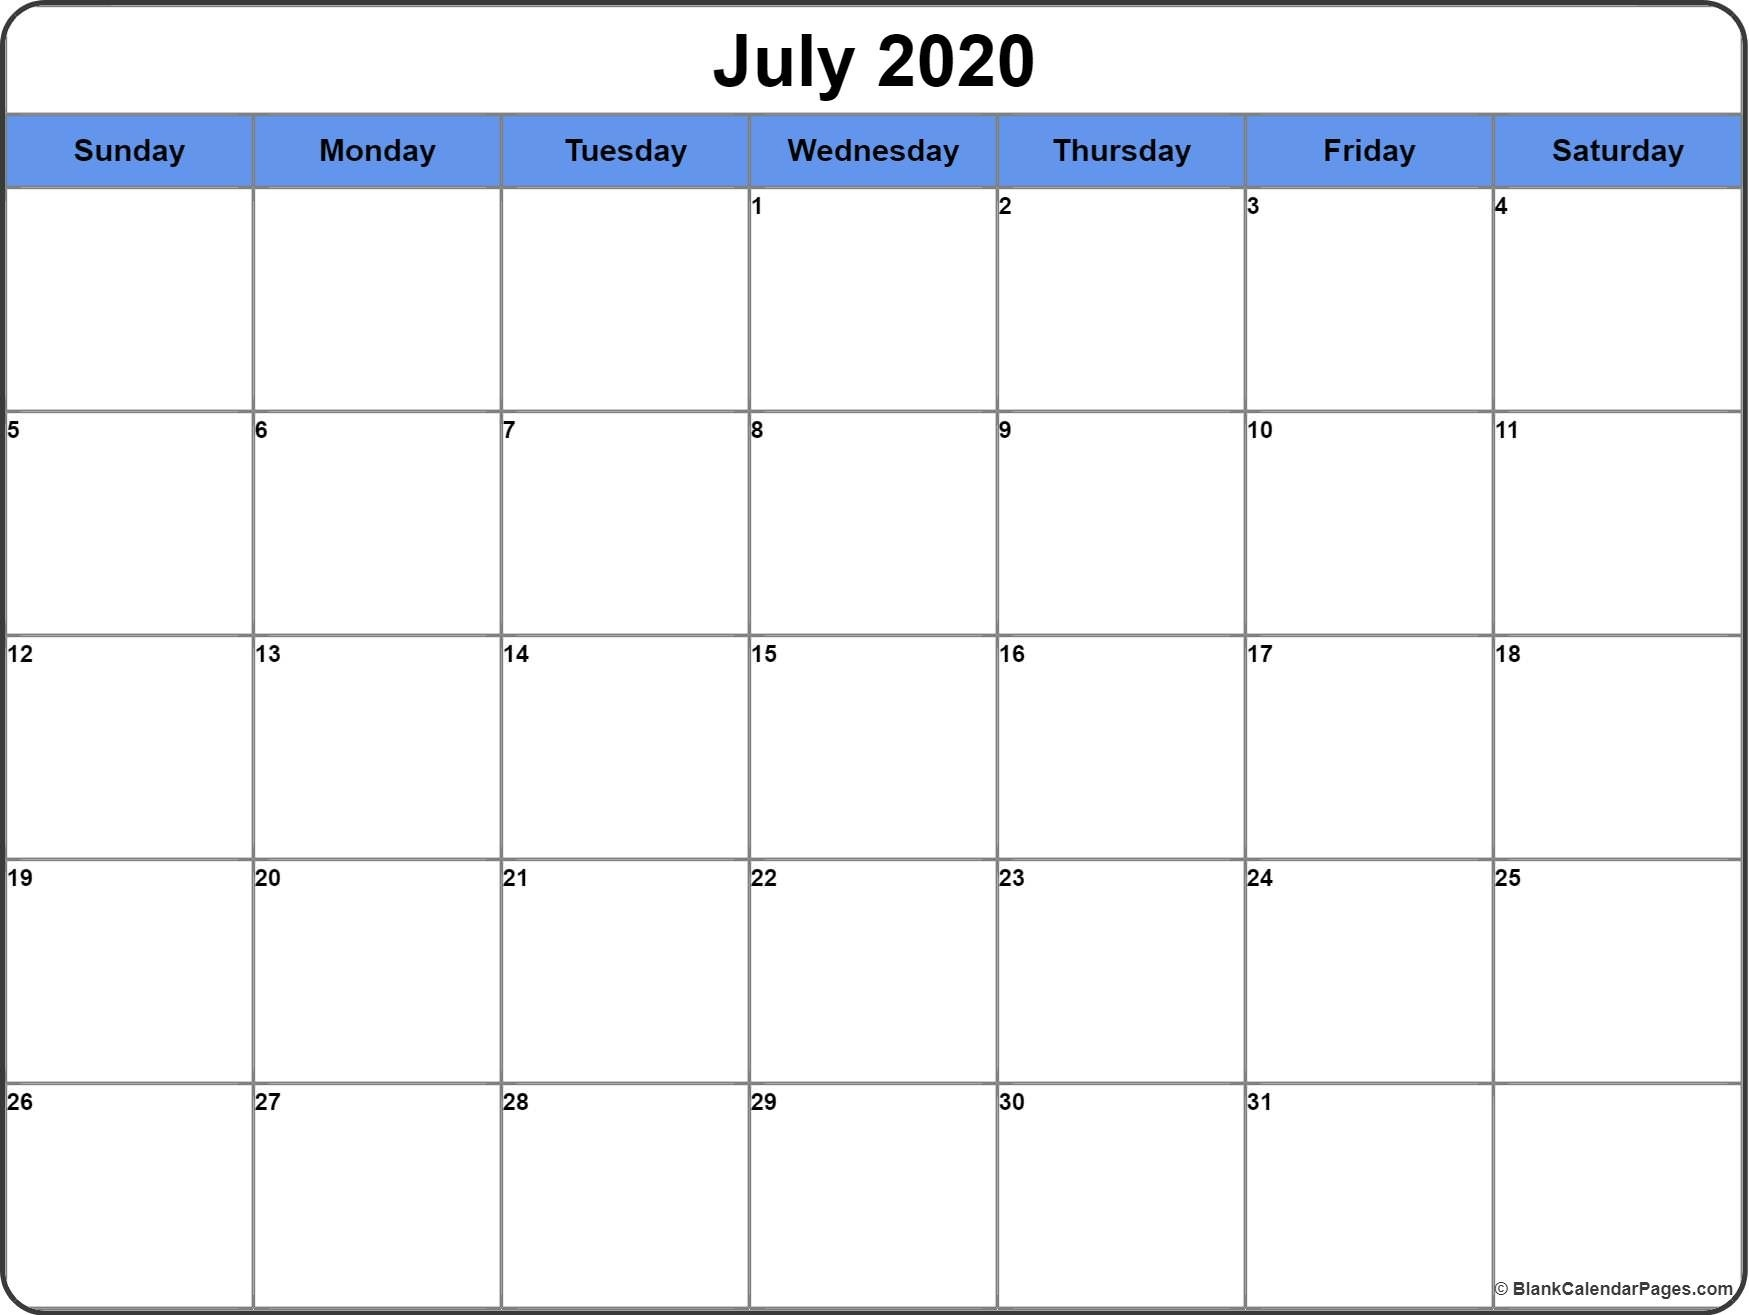 July 2020 Calendar | Free Printable Monthly Calendars-3 Month Blank Calendar June-August 2020